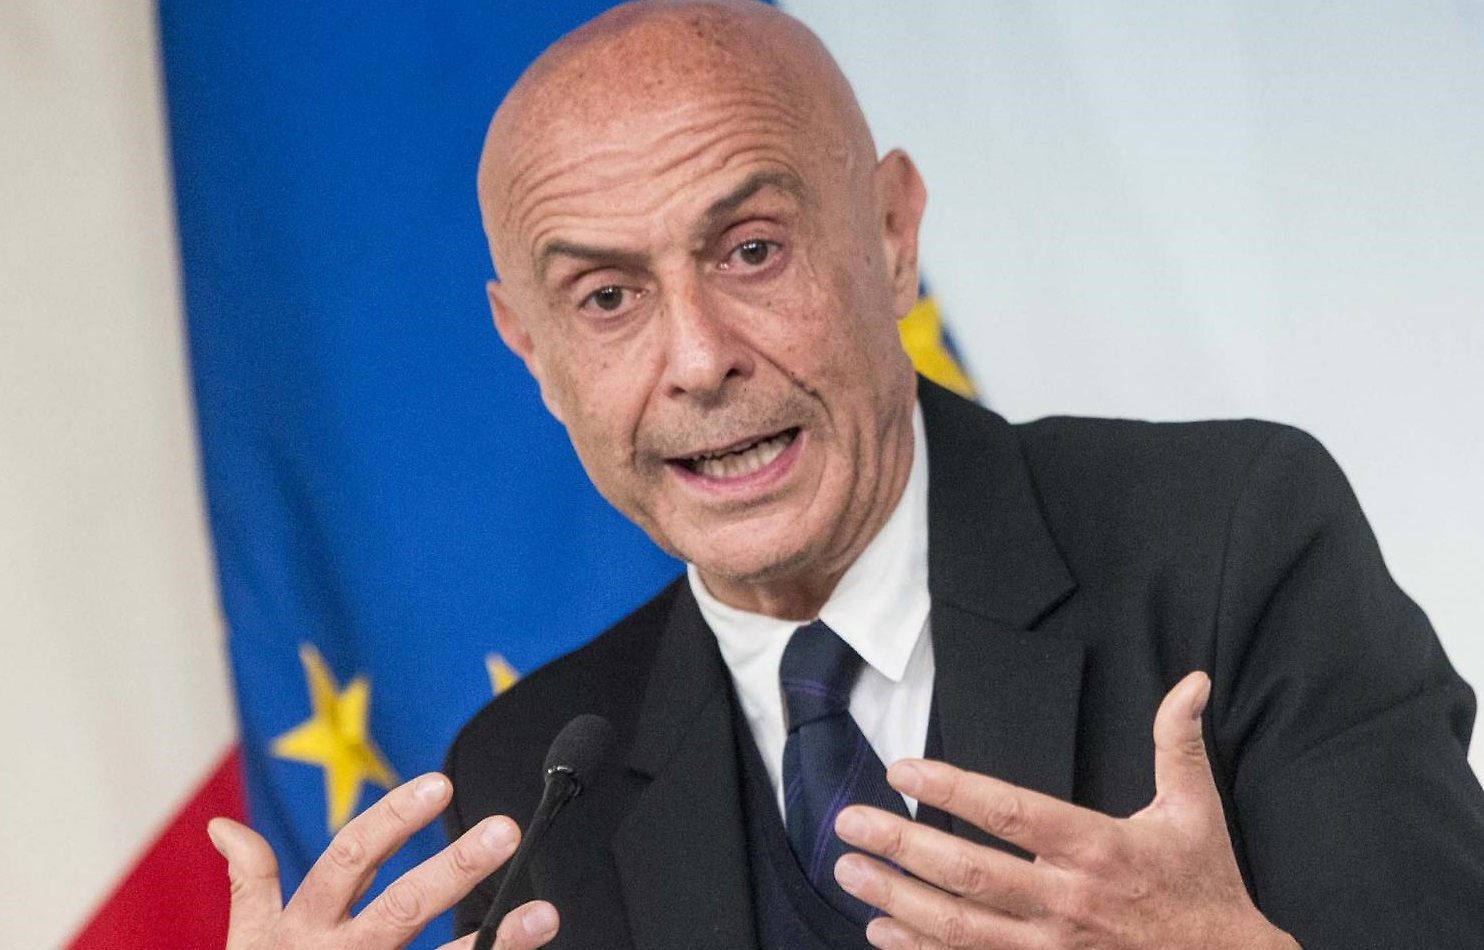 Firenze, Patto per la Sicurezza: Parla il Ministro Minniti